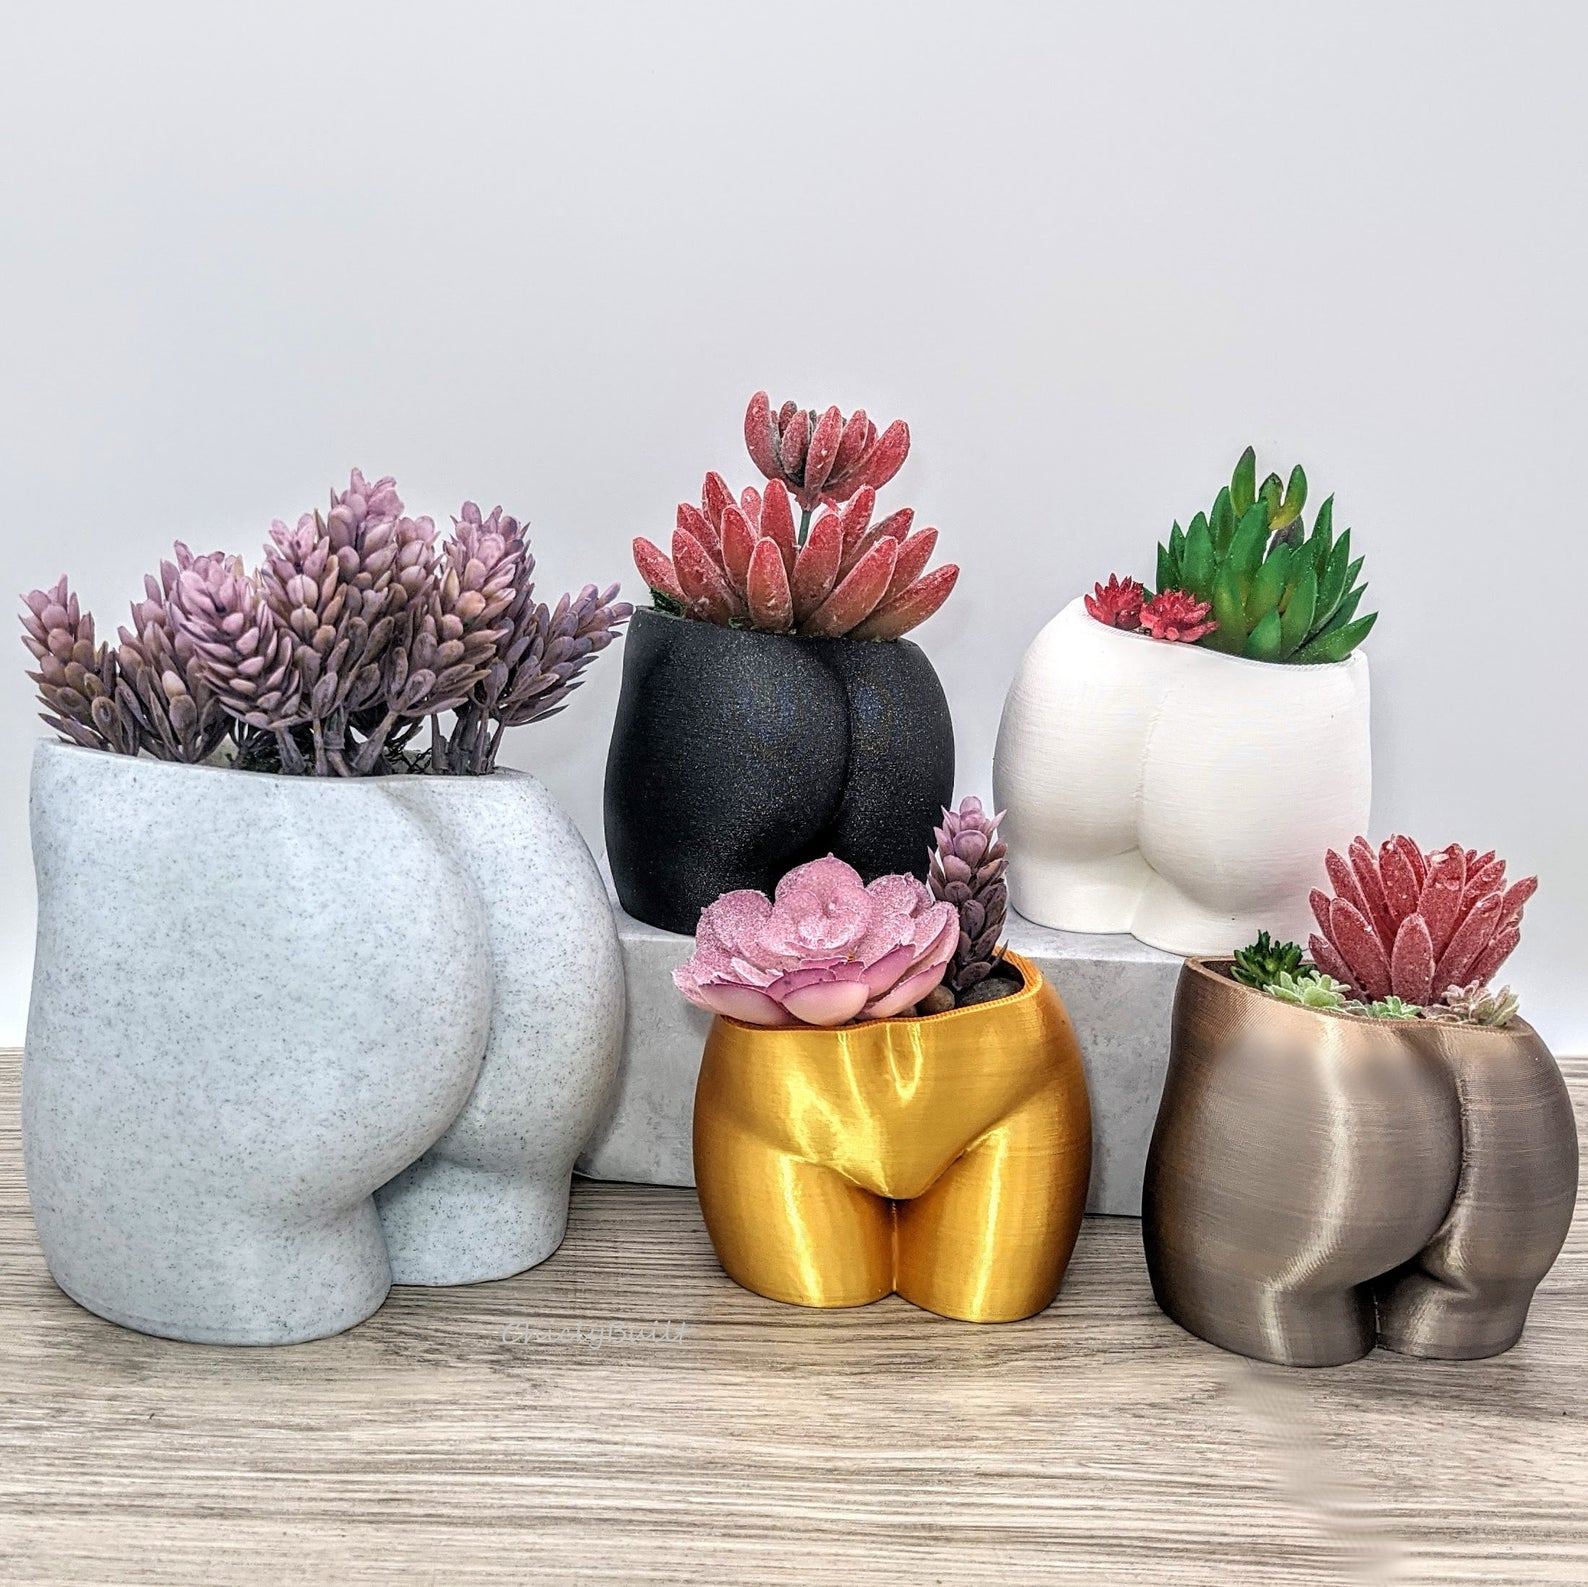 Booty planters